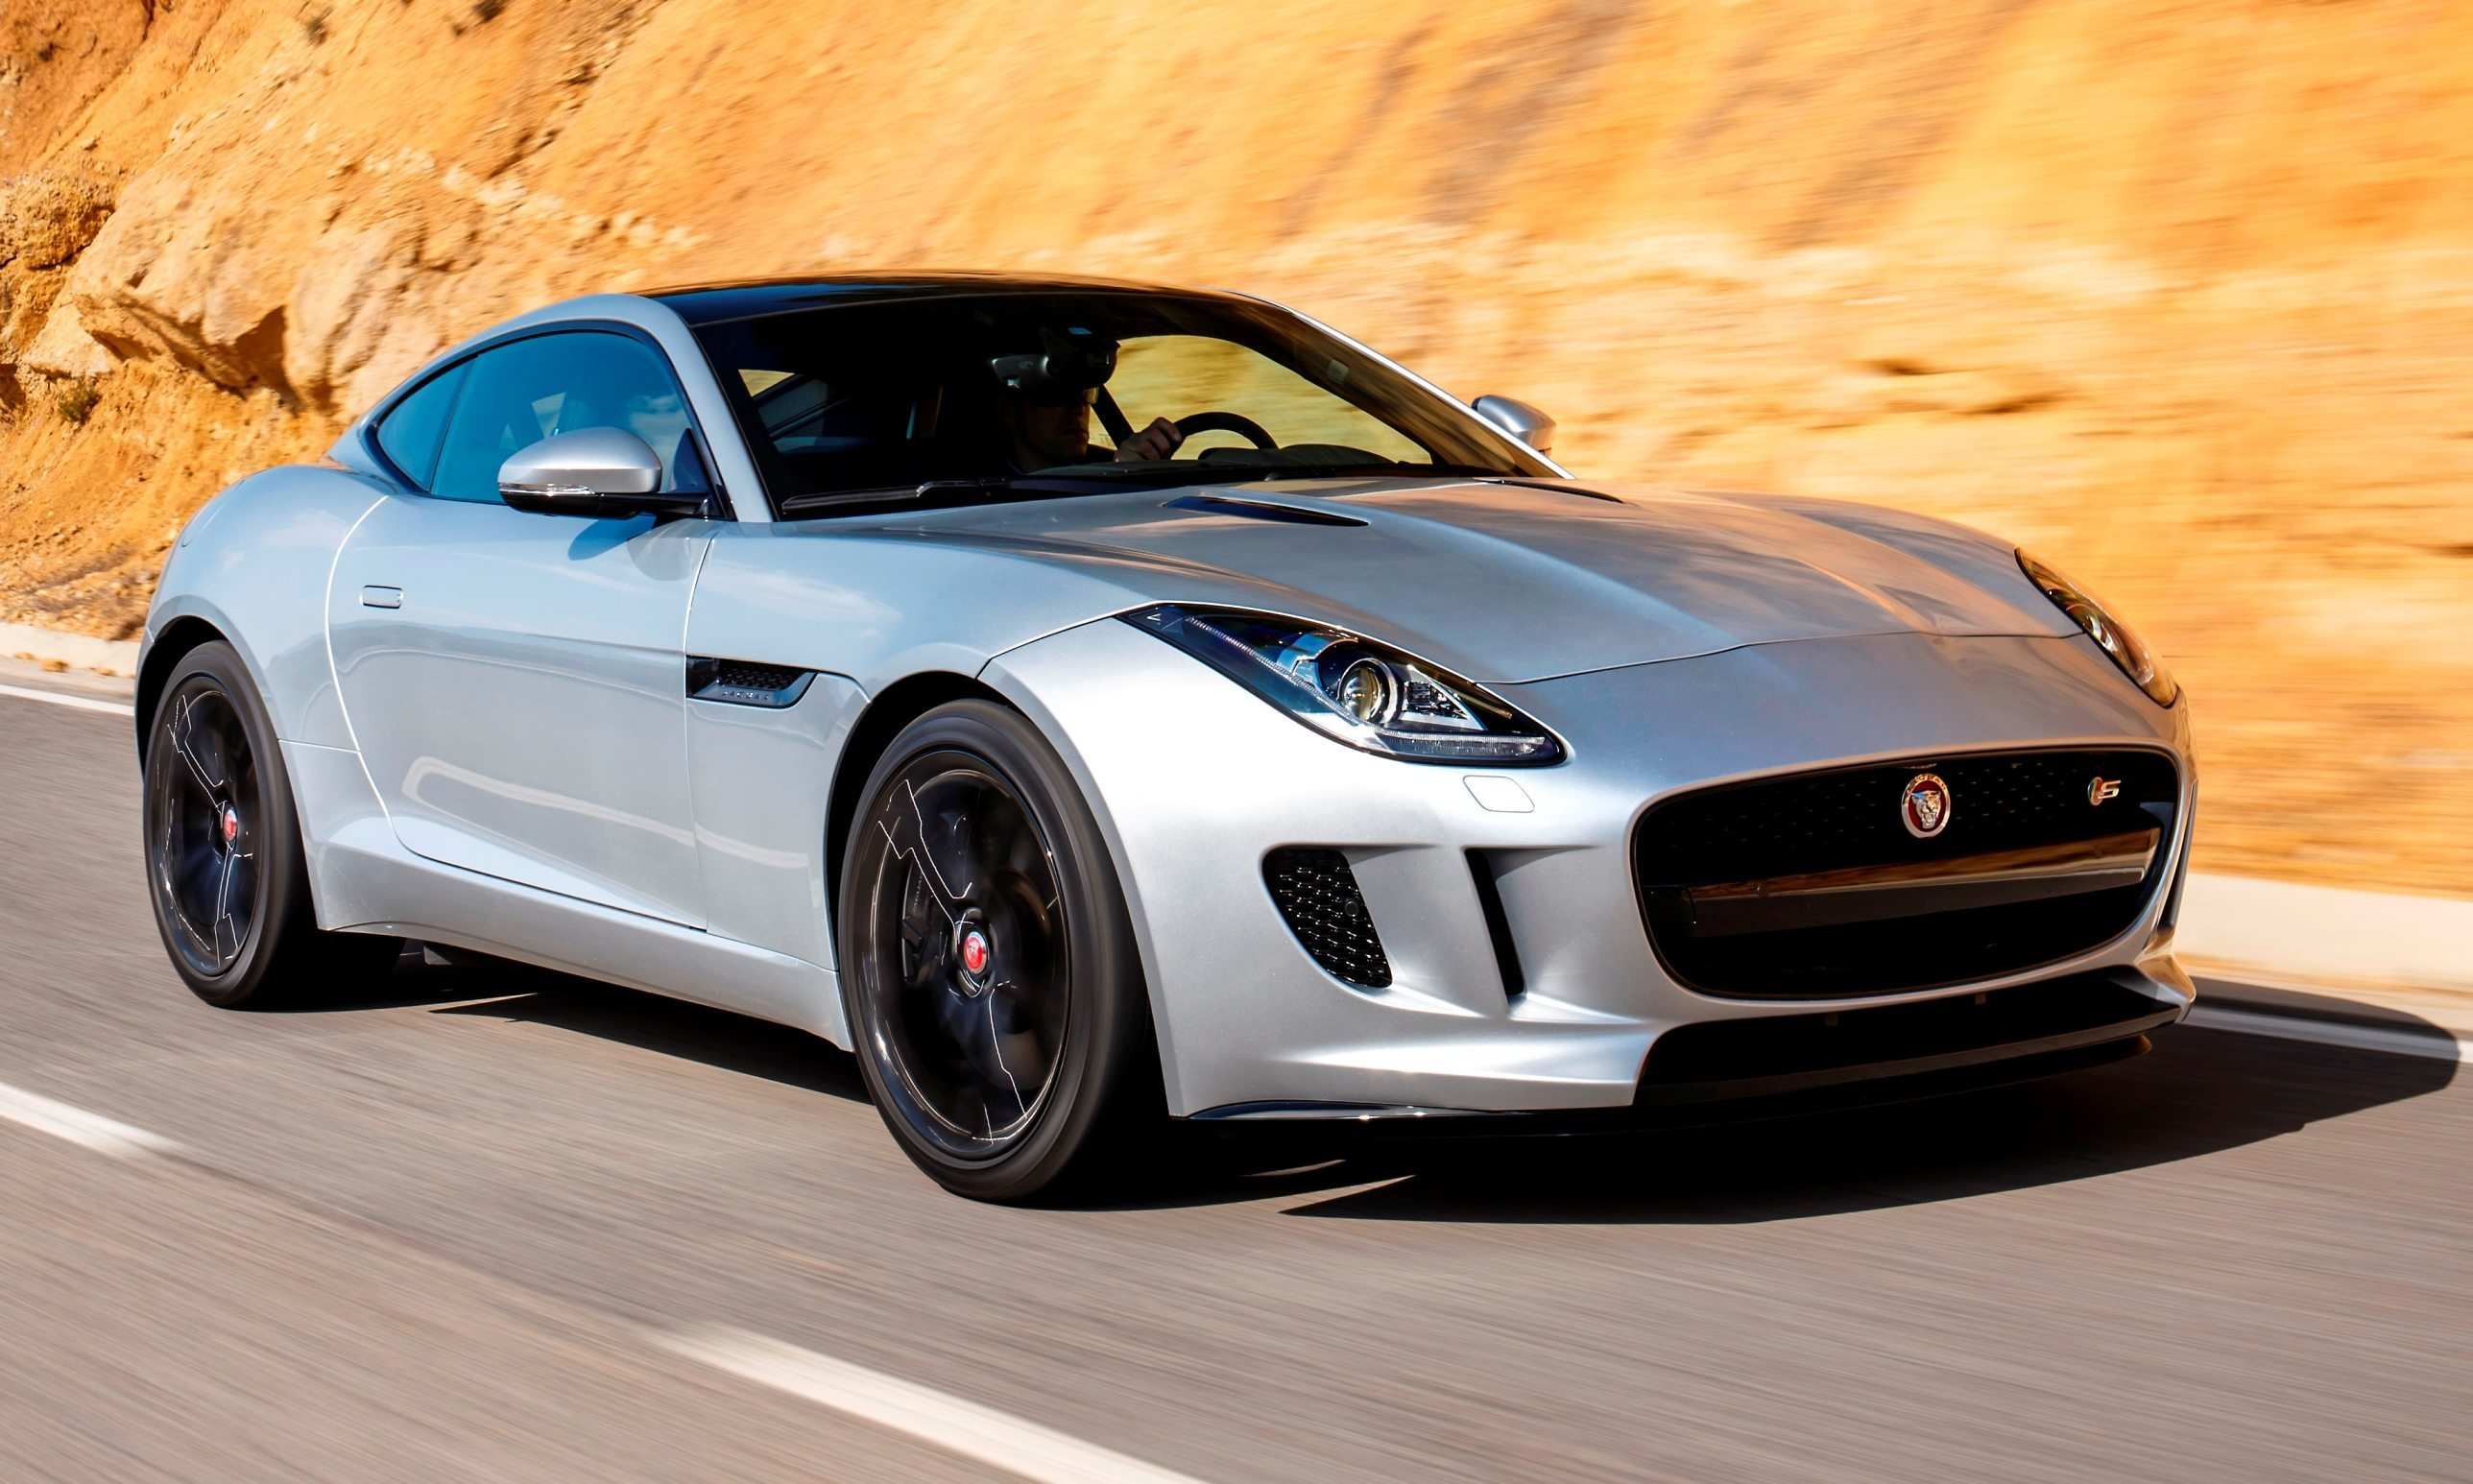 2015 JAGUAR F-Type Coupe - American Launch at Willow Springs in 75 ...